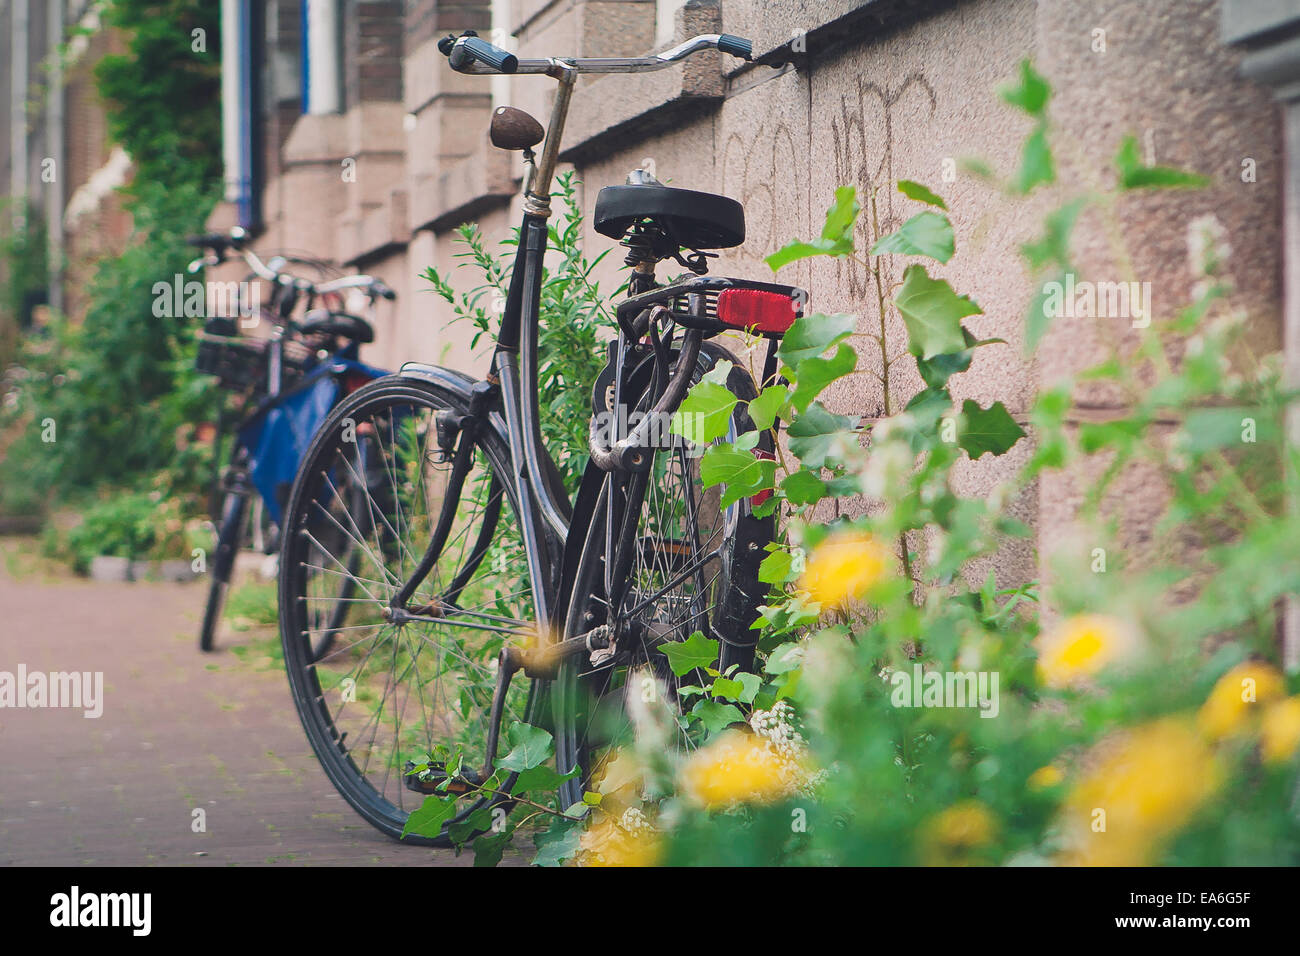 Netherlands, Amsterdam, View of parked bikes - Stock Image